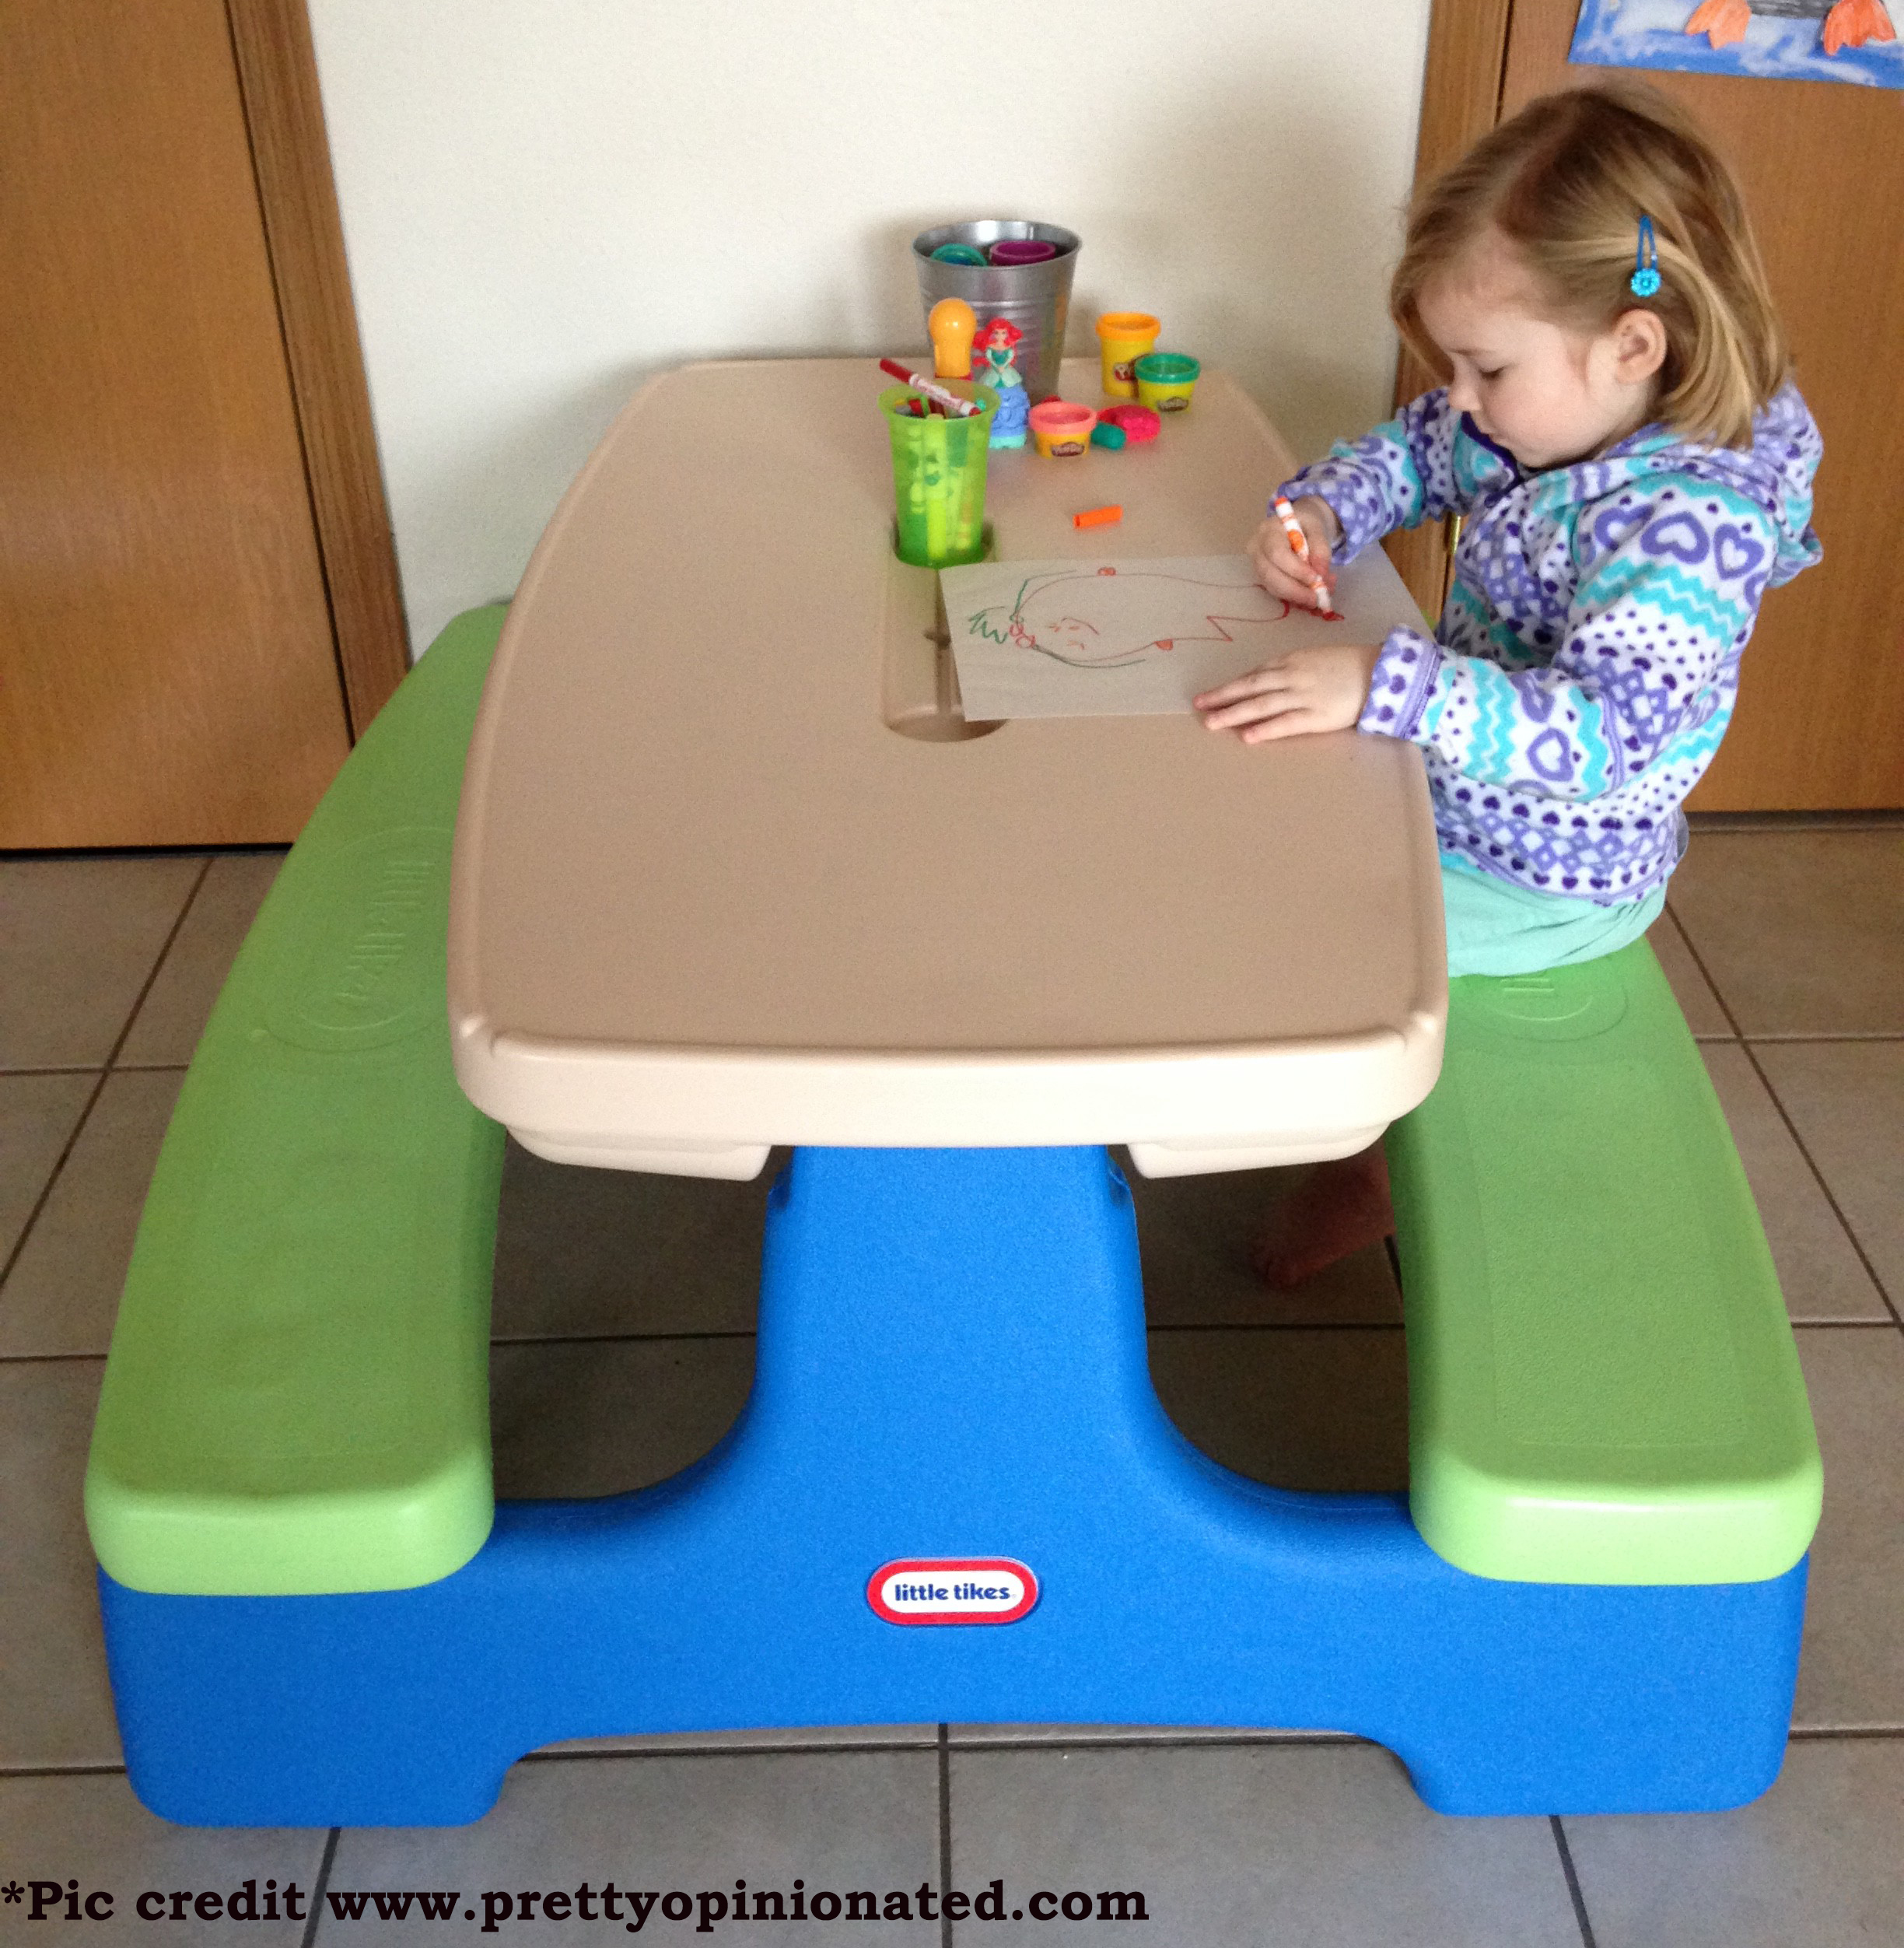 Little tikes easy store picnic table with umbrella cooltoysrental little tikes easy store picnic table with umbrella watchthetrailerfo